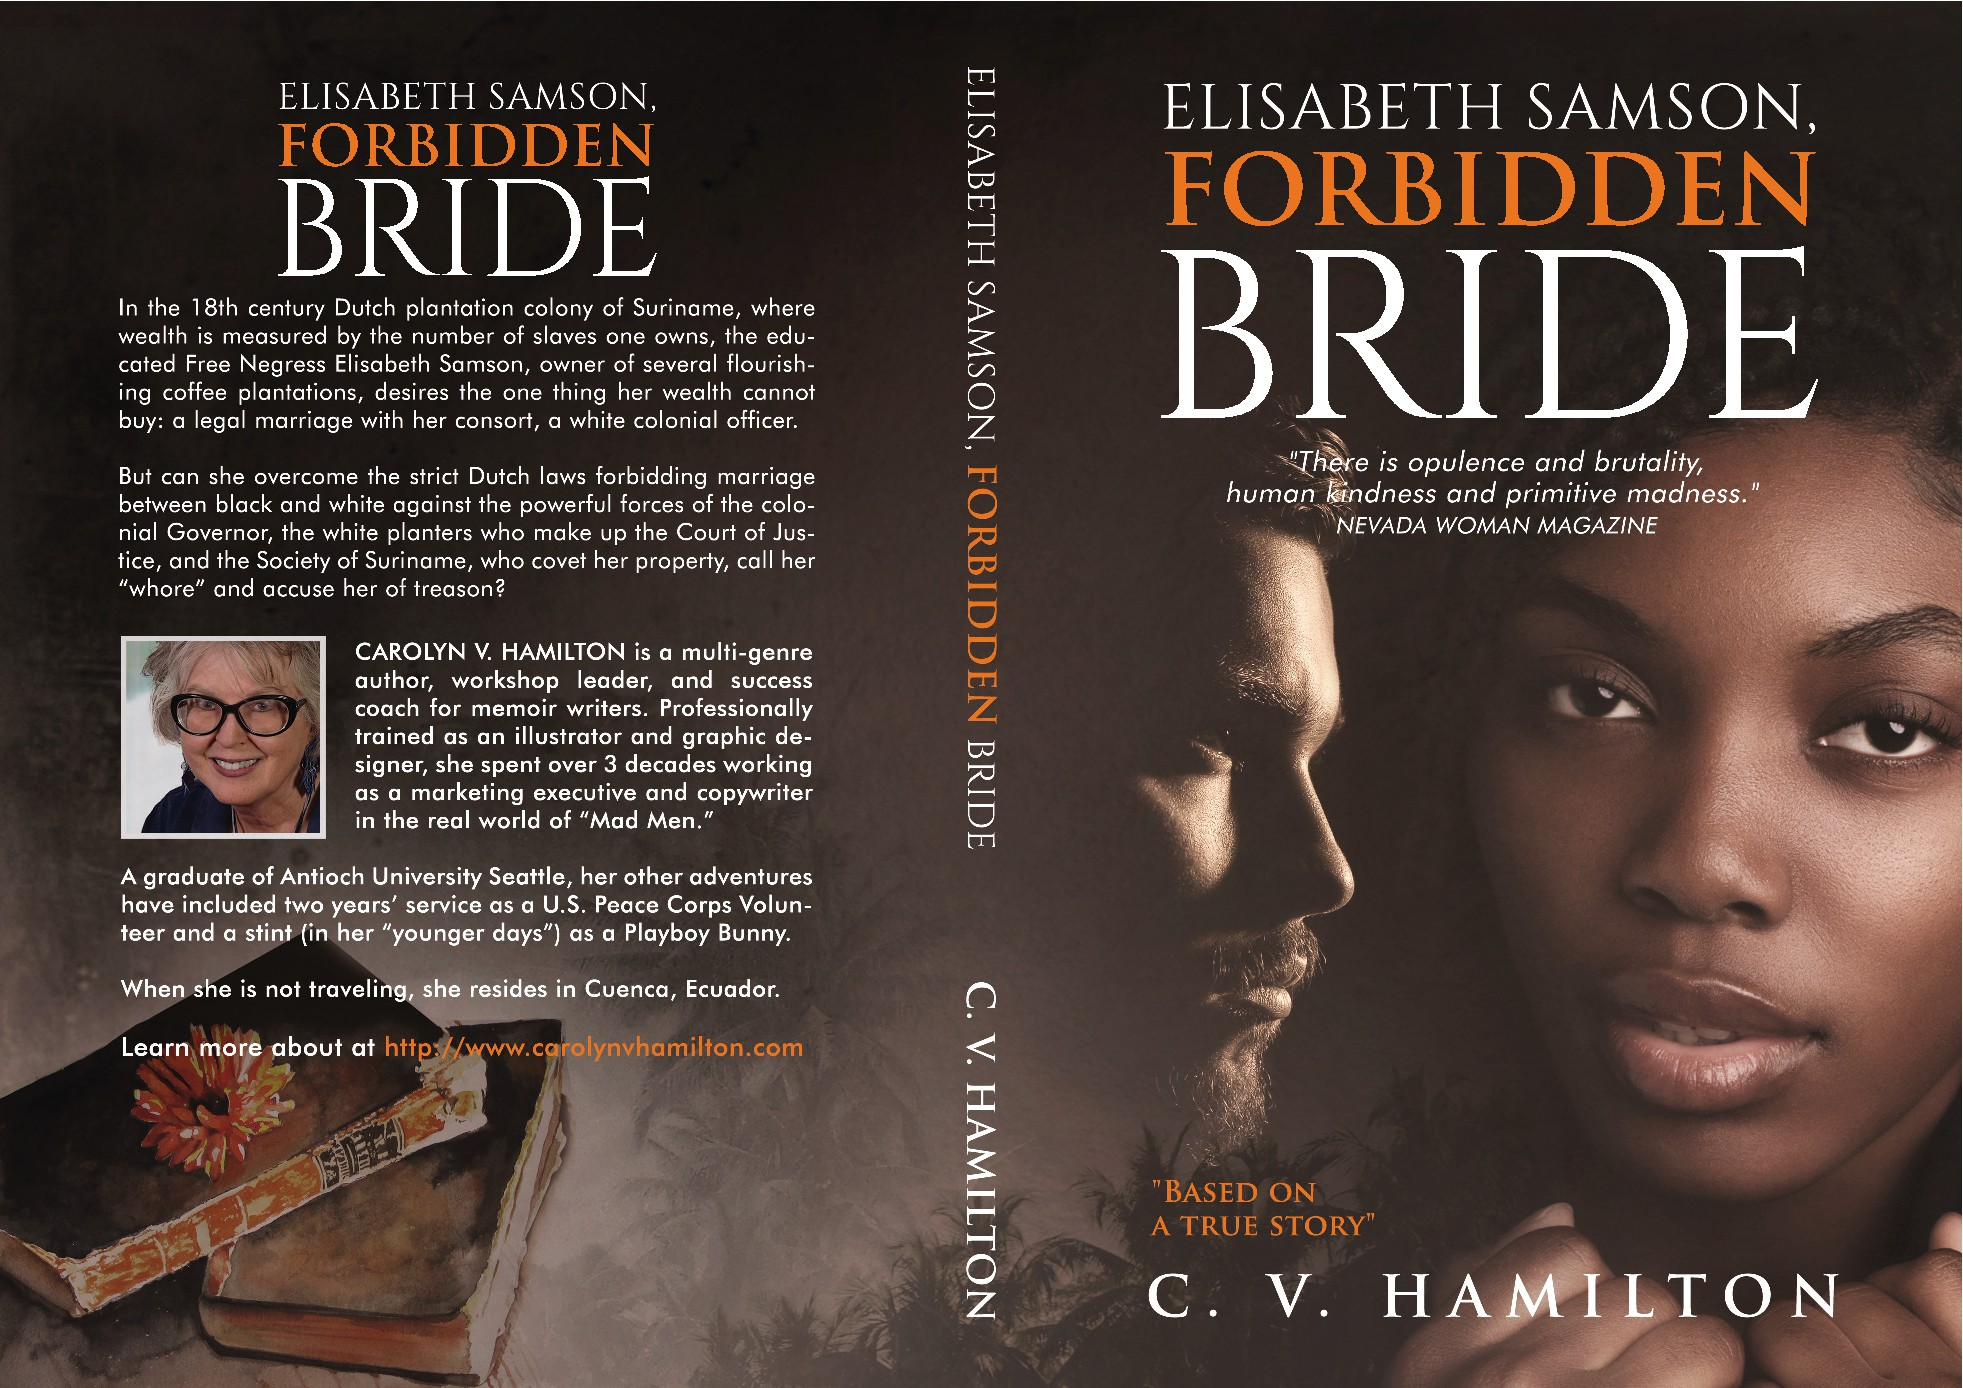 BOOK COVER DESIGN for a literary novel based on a true historical story